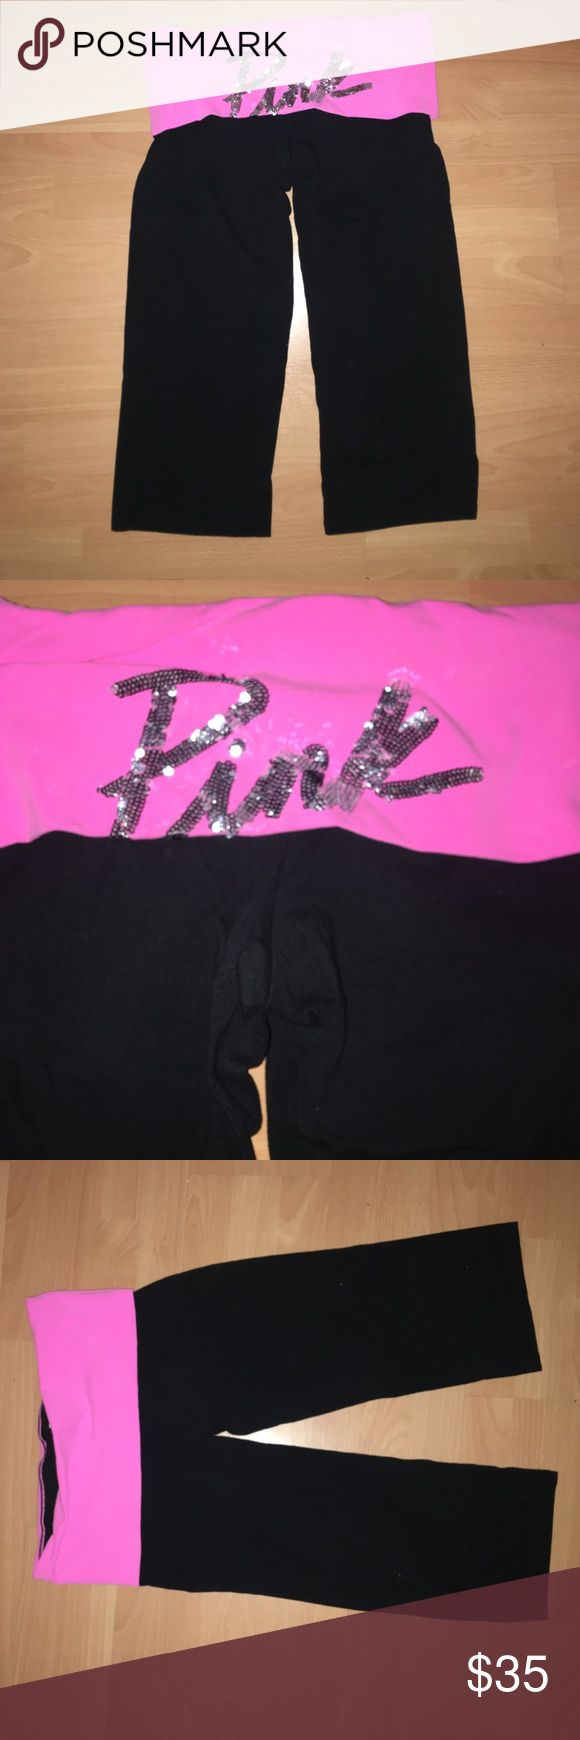 PINK YOGA PANTS Worn one time!! In excellent condition! Like new. Make me an offer :) PINK Victoria's Secret Pants